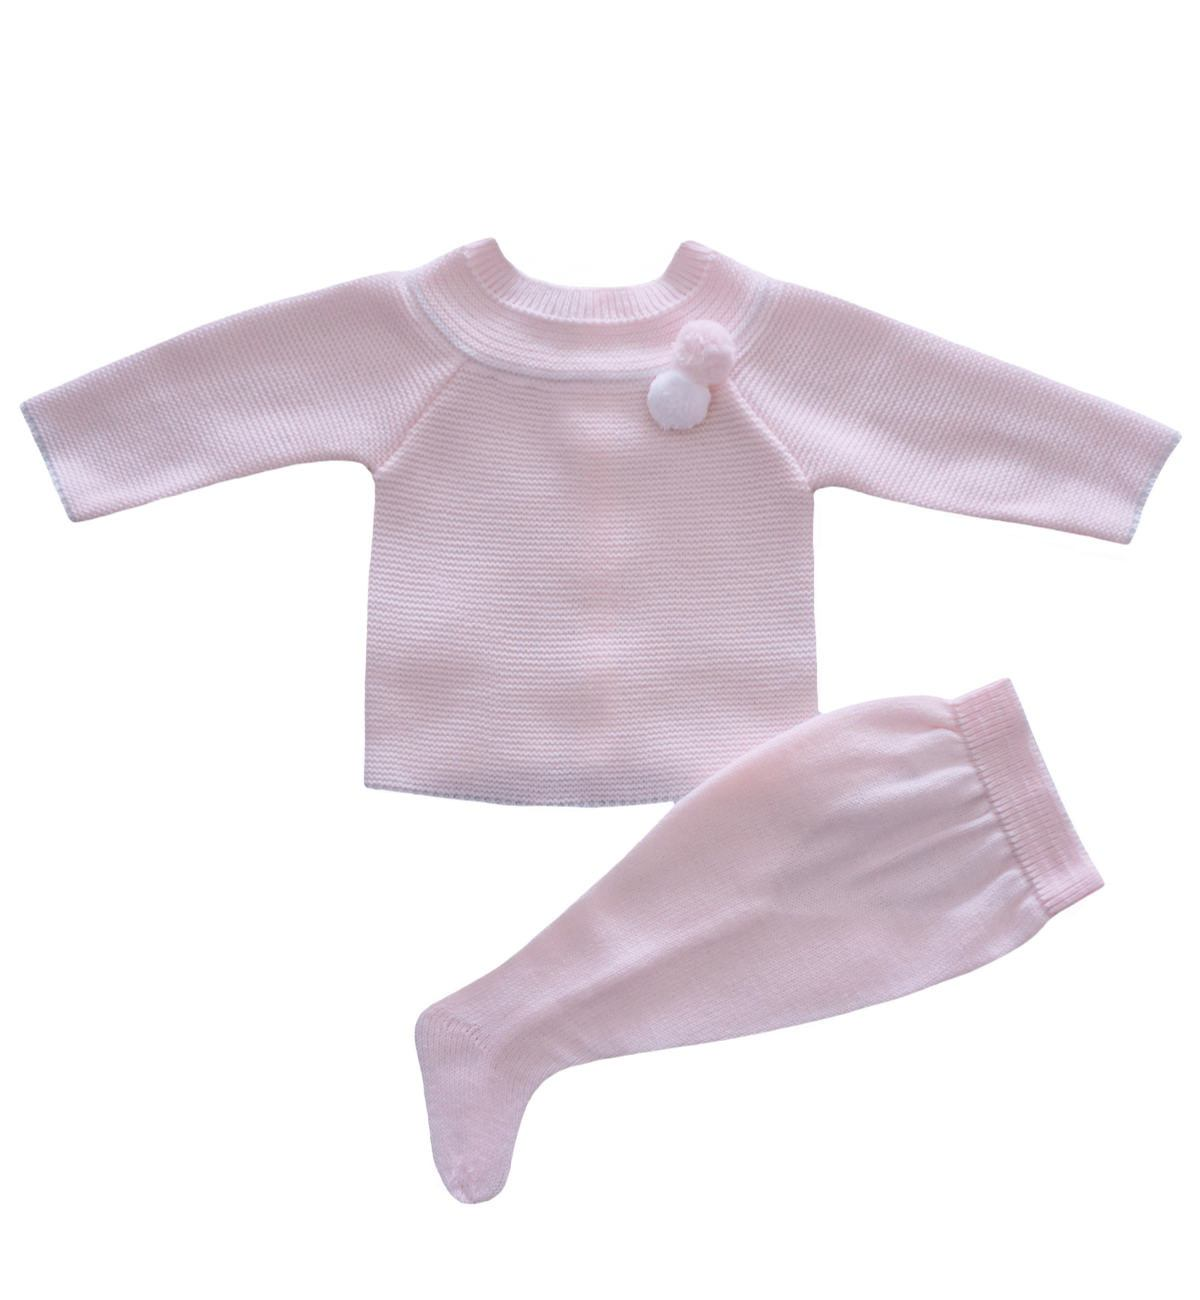 Spanish baby clothes | baby Knitted sets | Pale pink & white knitted set |babymaC  - 1